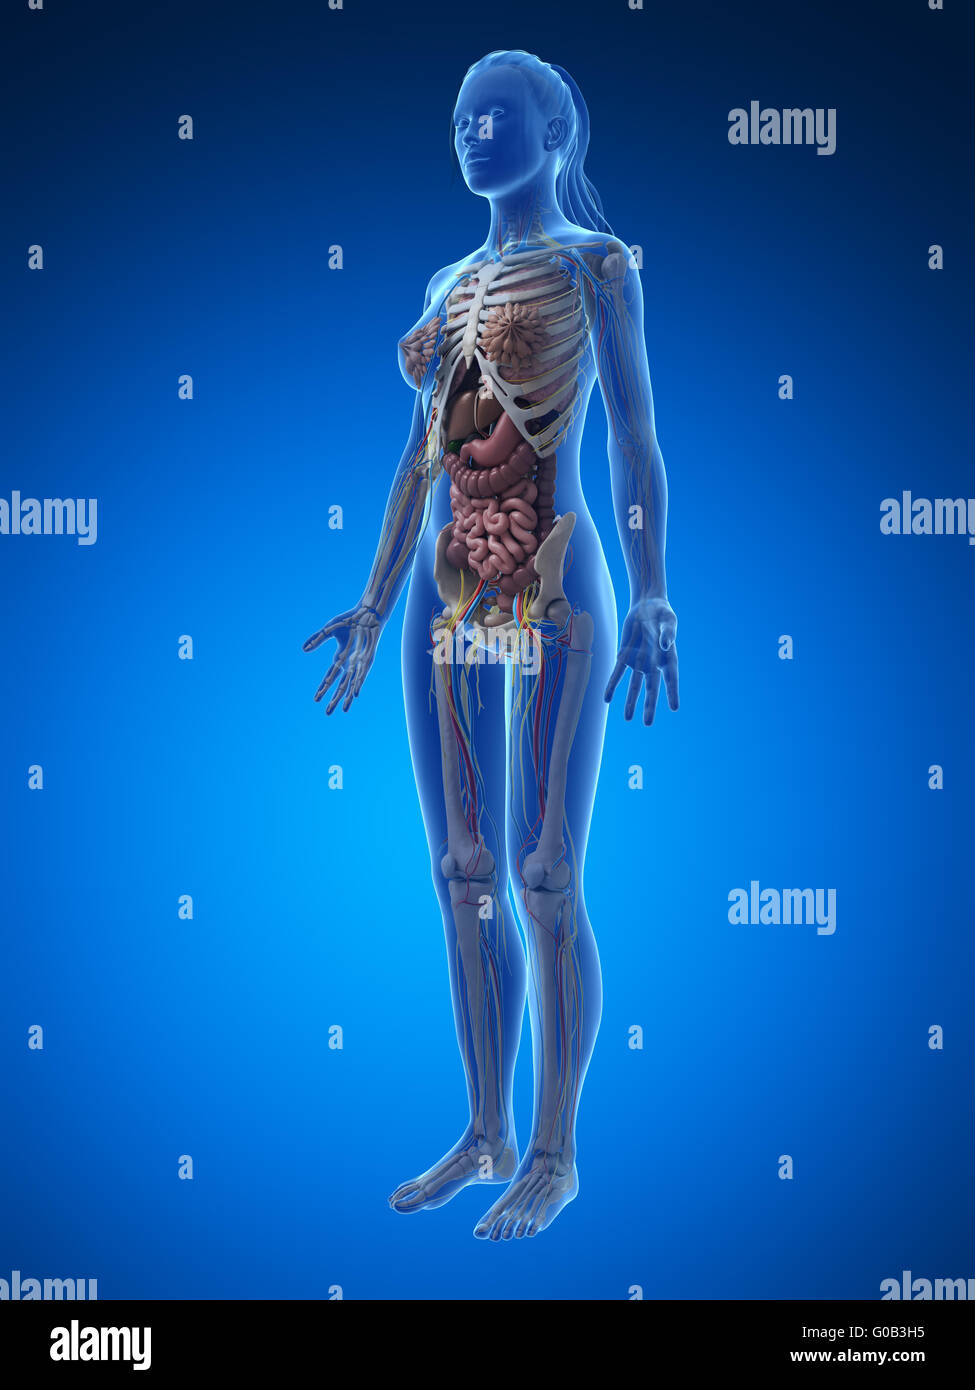 3d Rendered Illustration Of The Female Anatomy Stock Photo Royalty